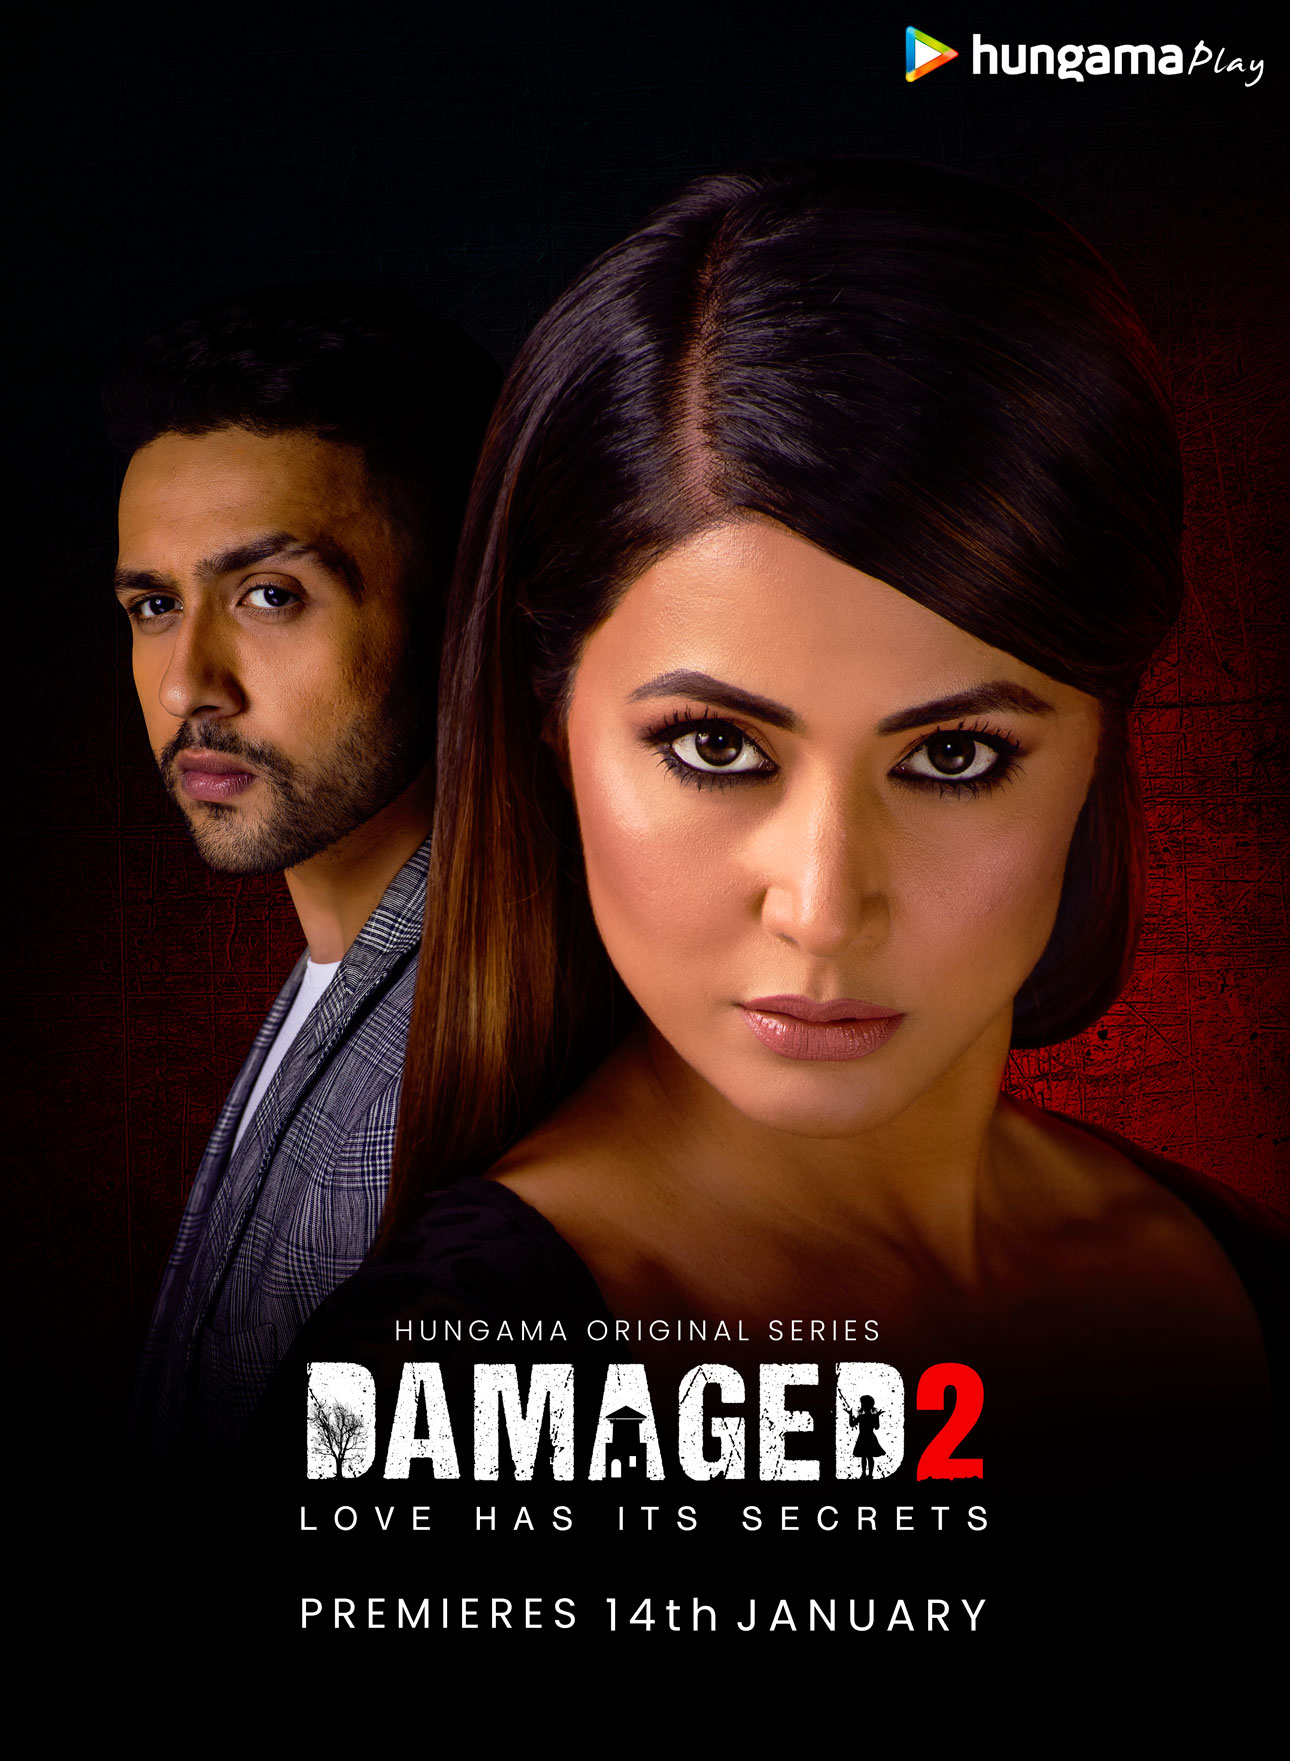 Damaged 2 2020 Hungama Originals S02 [E1-6] 720p WEB-DL